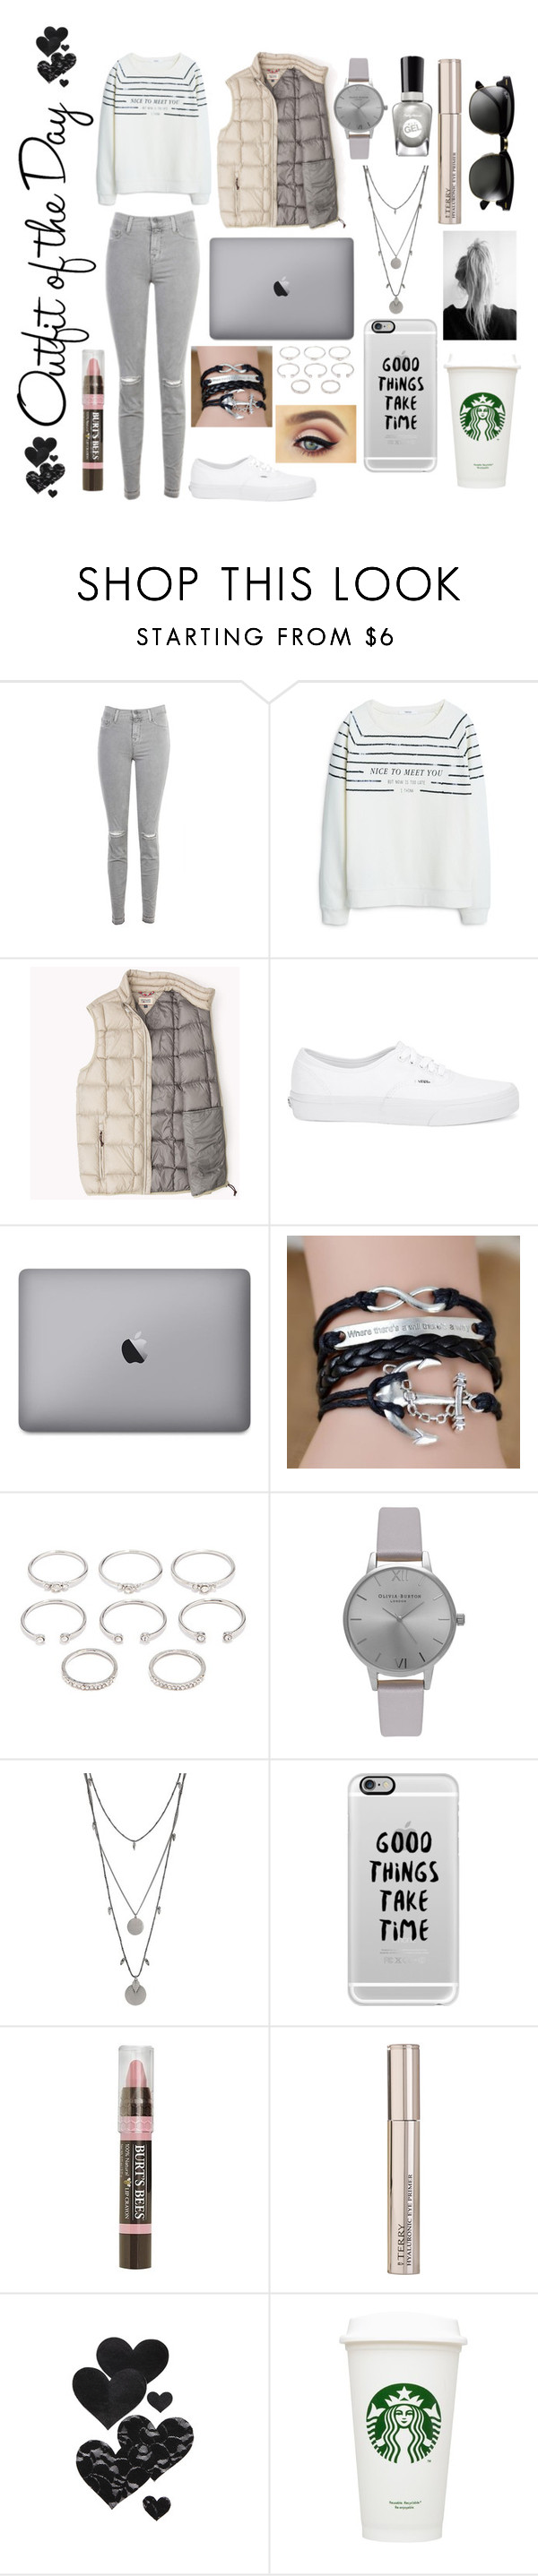 """""""OOTD"""" by bruh-with-sunglasses ❤ liked on Polyvore featuring Petit Bateau, J Brand, MANGO, Dolan, Vans, Forever 21, Olivia Burton, Vince Camuto, Casetify and Burt's Bees"""